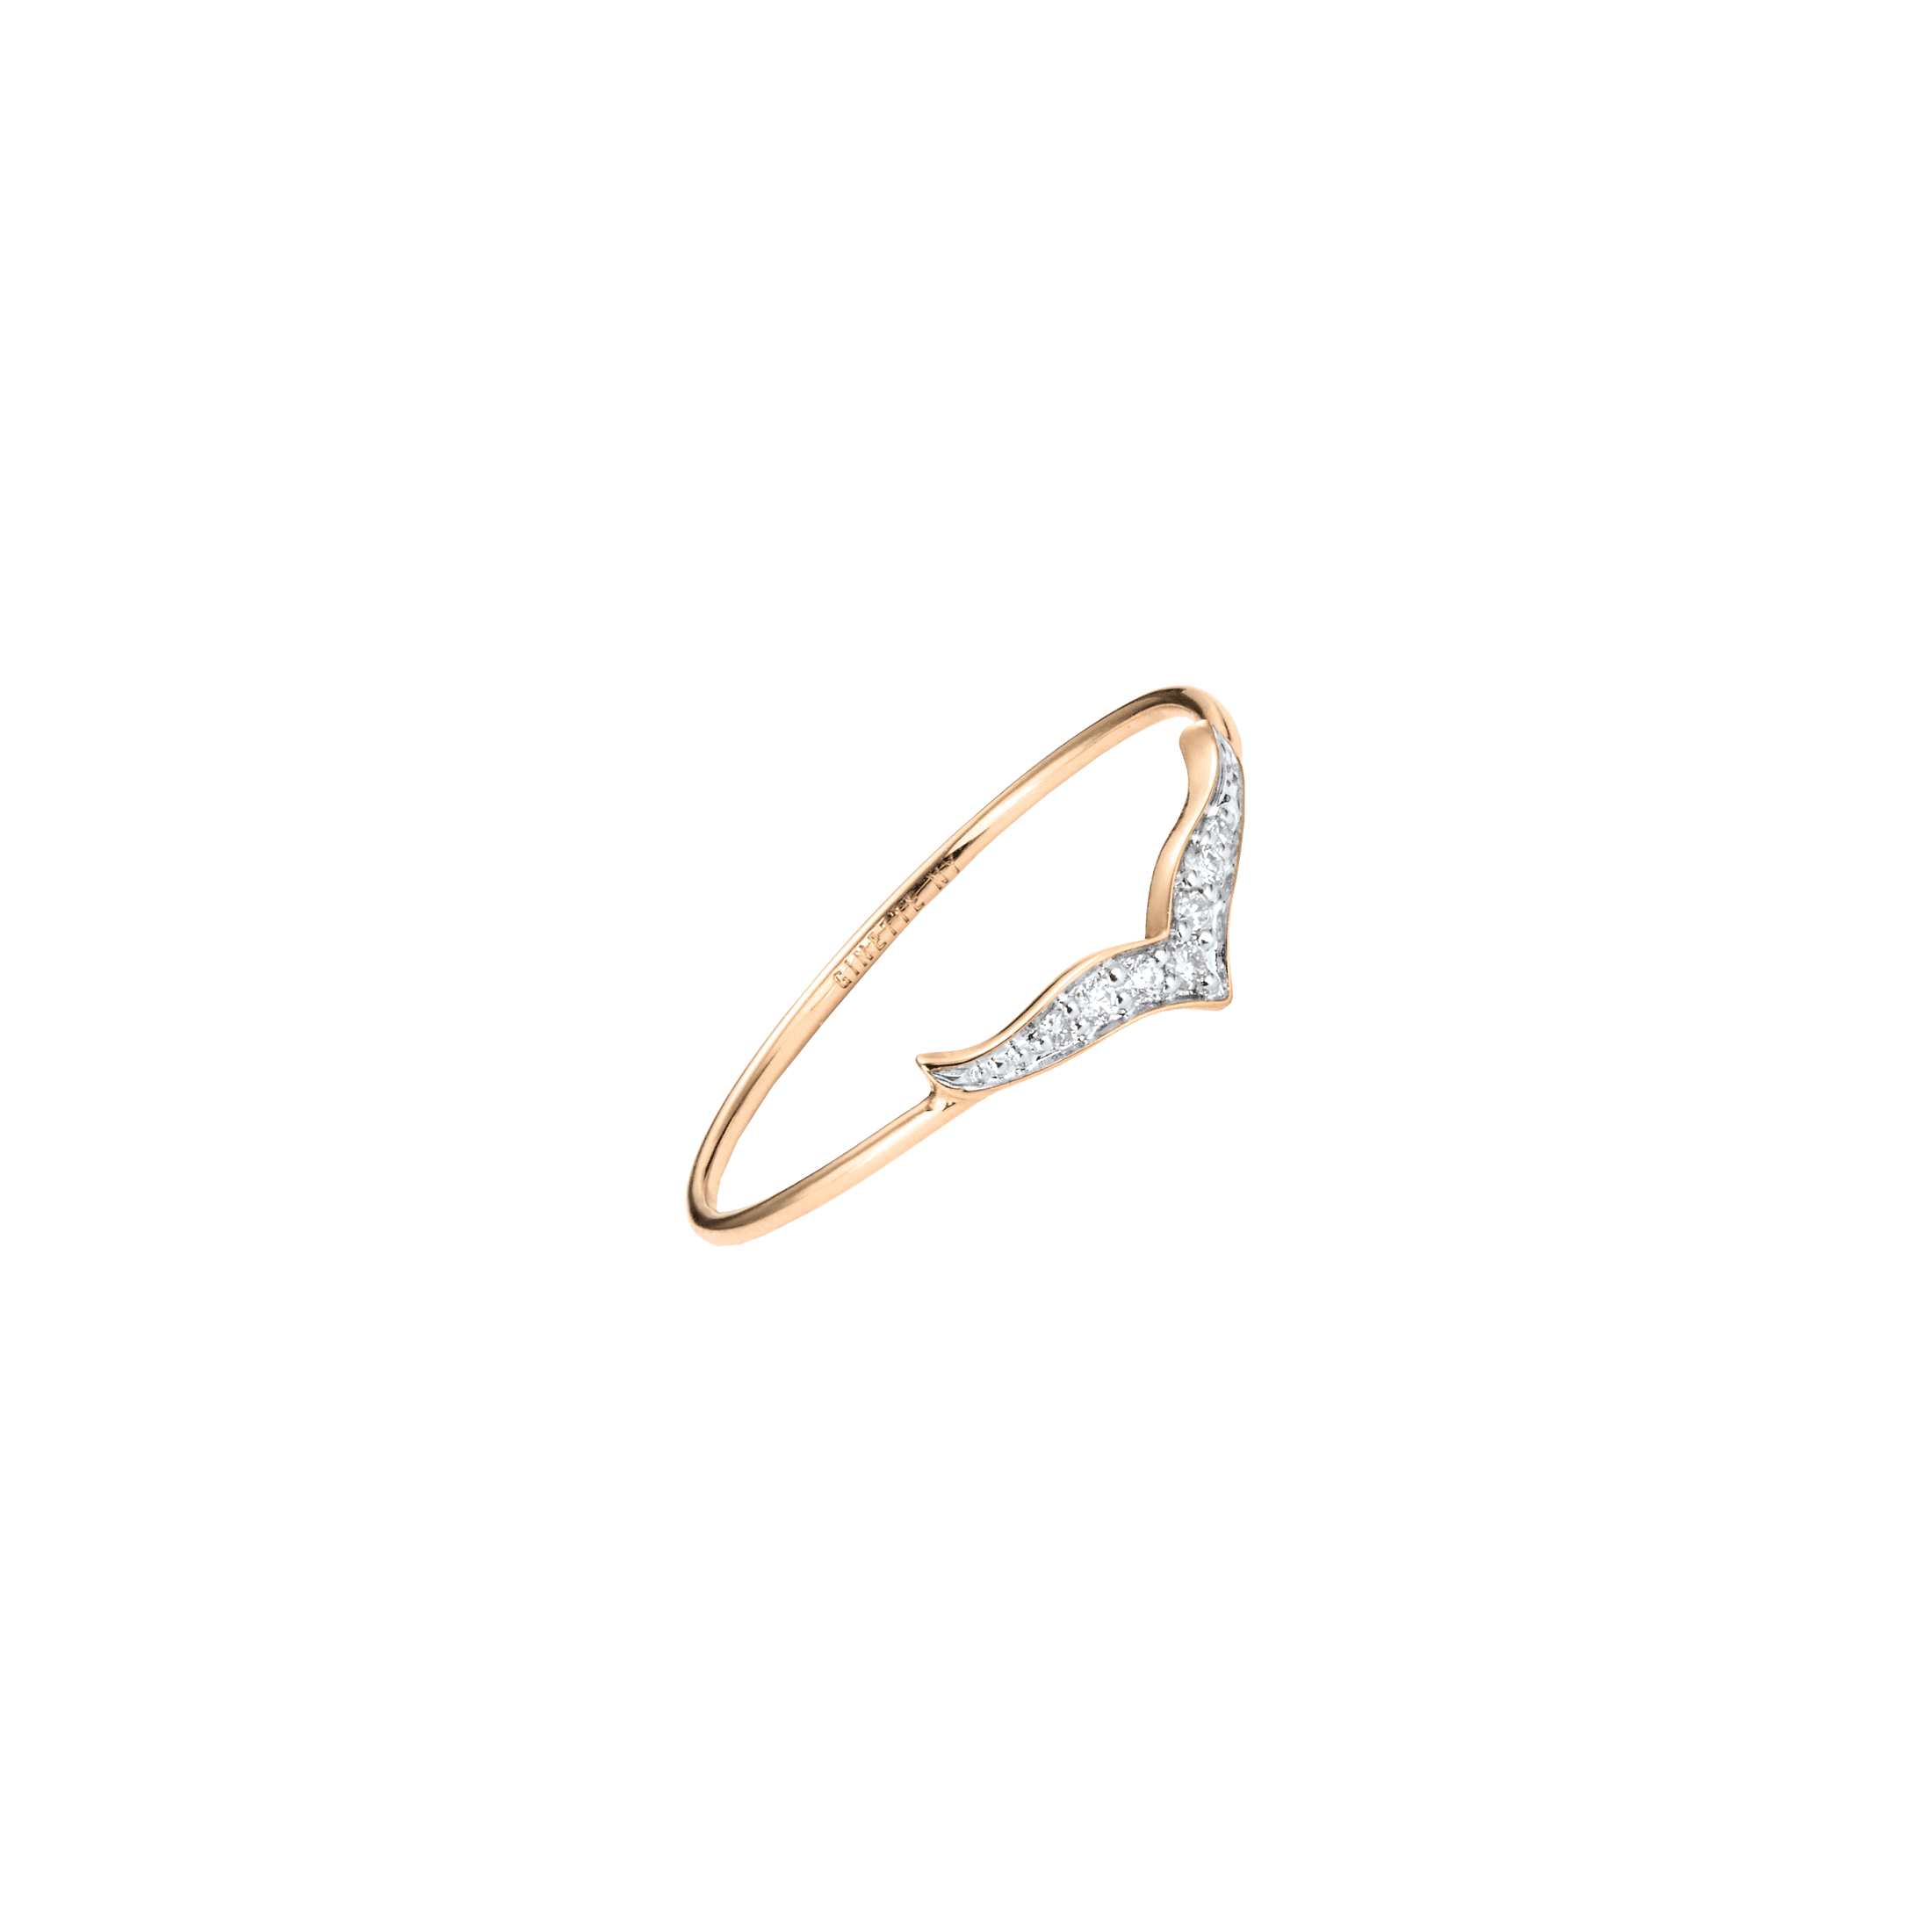 Bague Ginette NY Wise en or rose et diamants